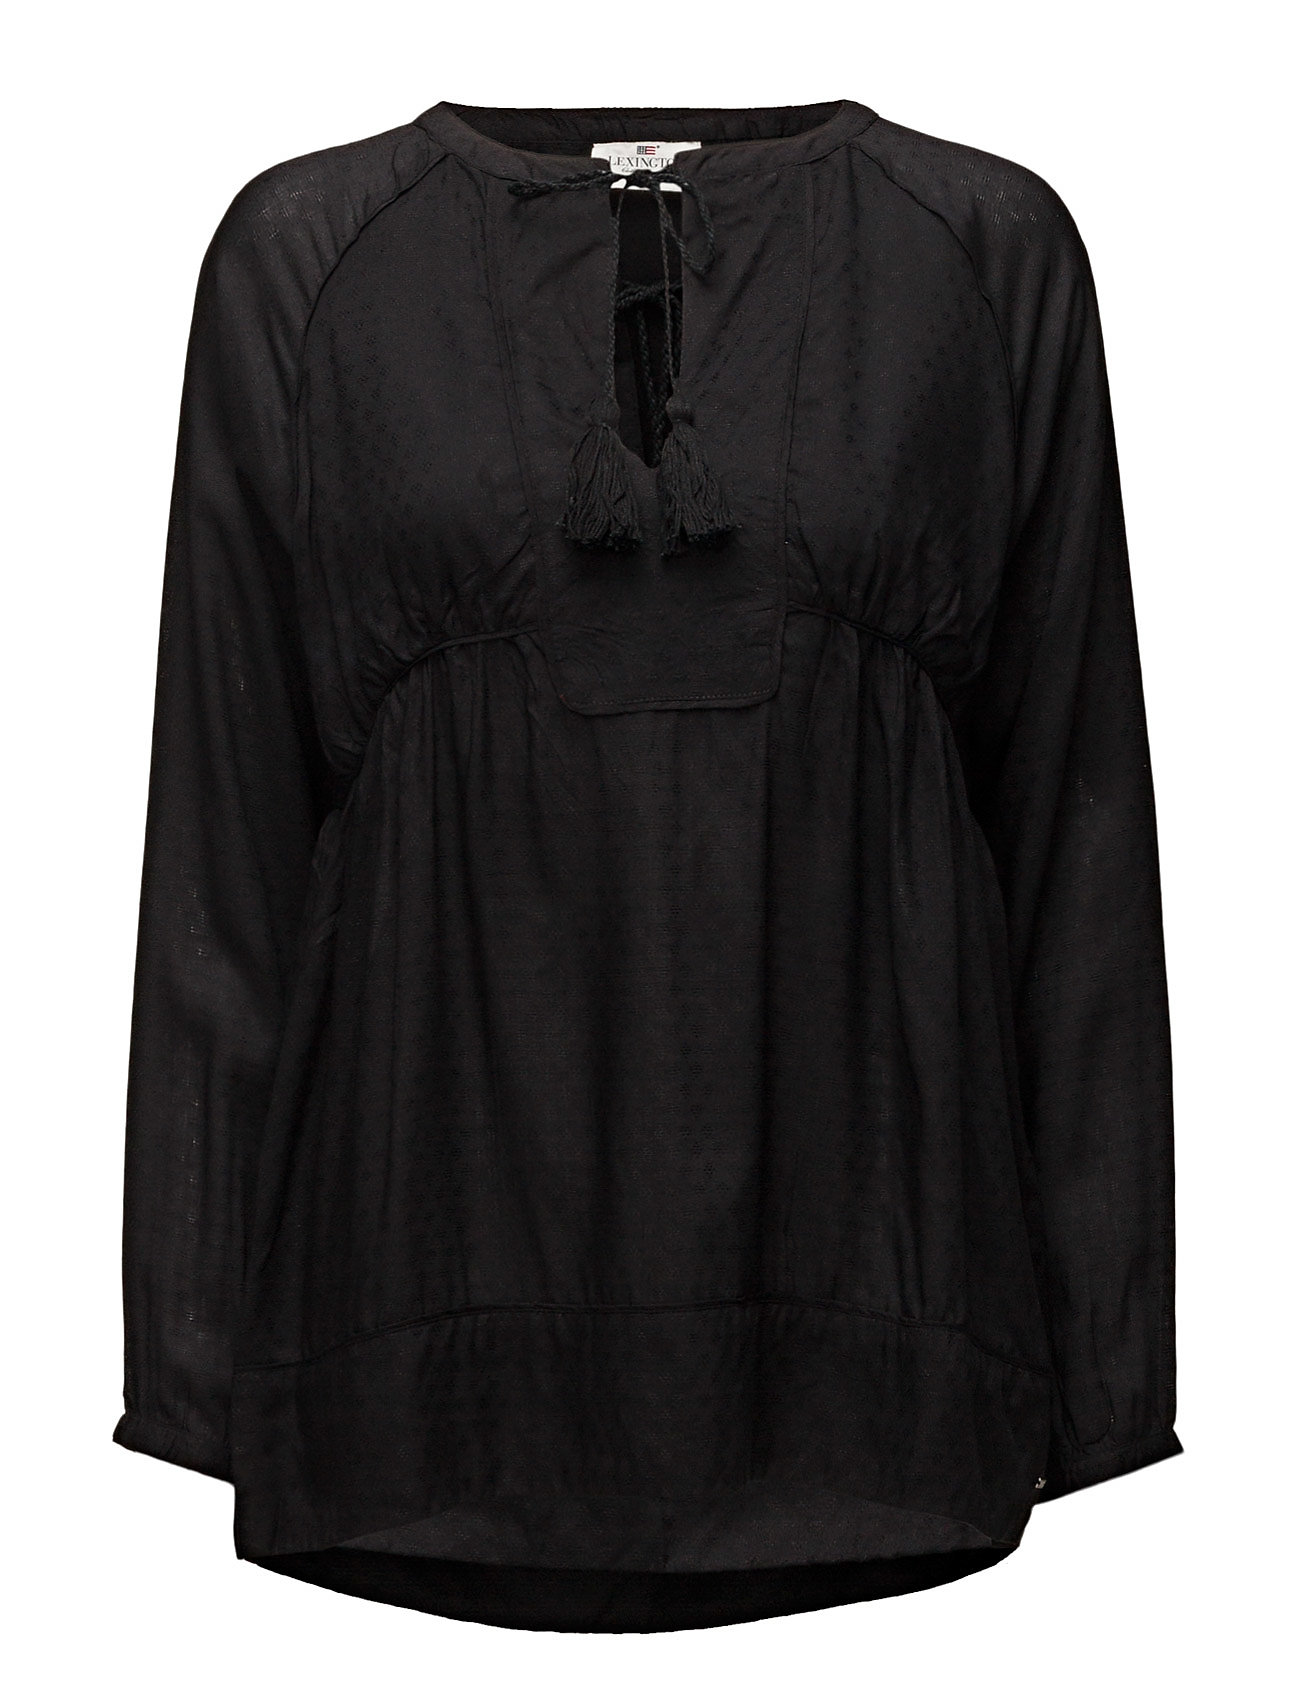 Lexington Clothing Issie Tunic - CAVIAR BLACK